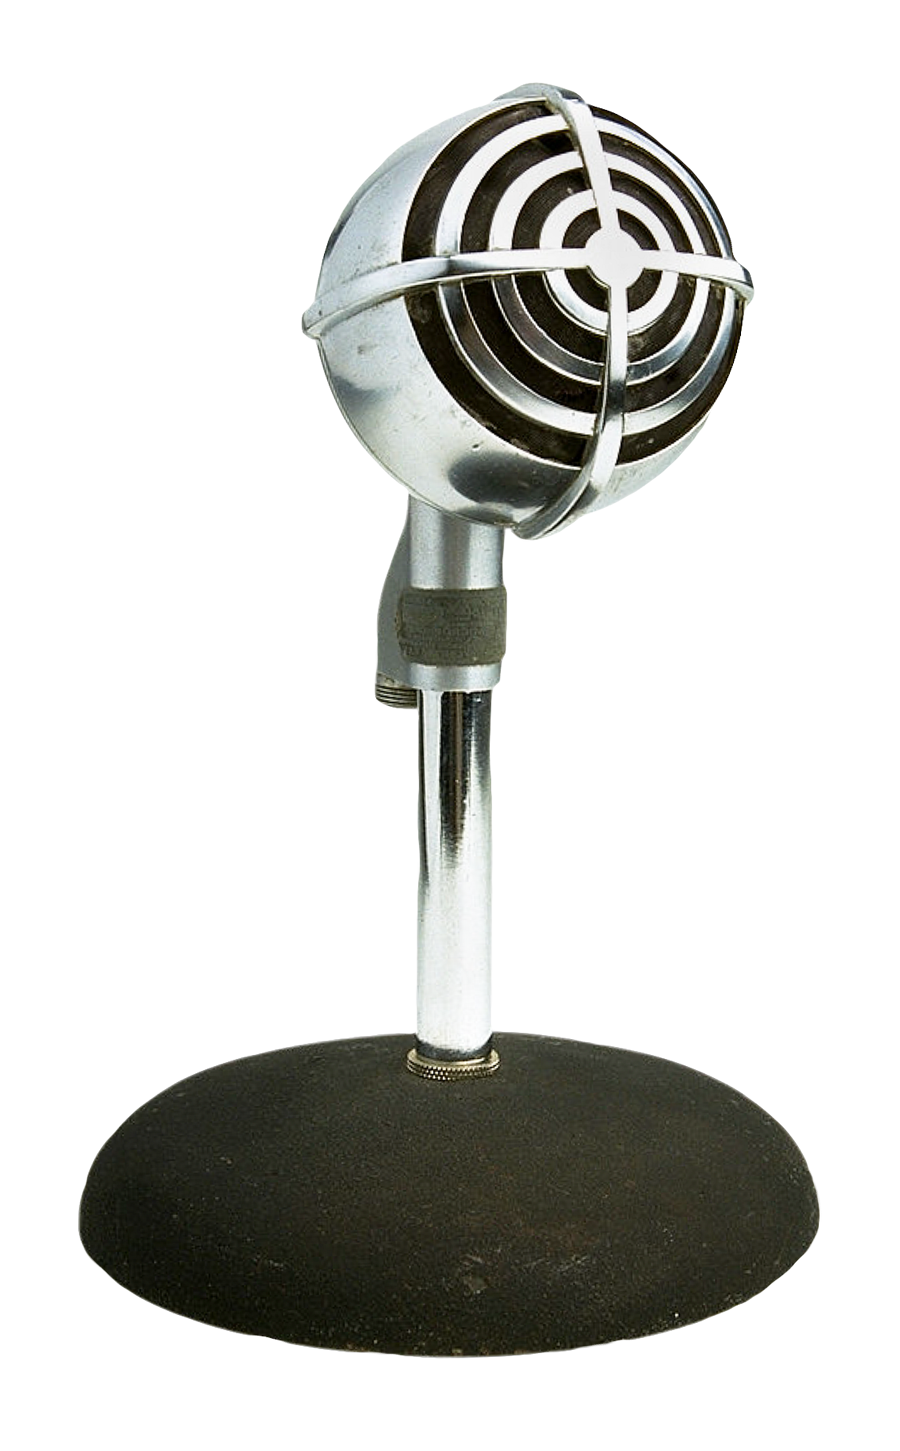 Old time microphone png. Mic images pngpix retro